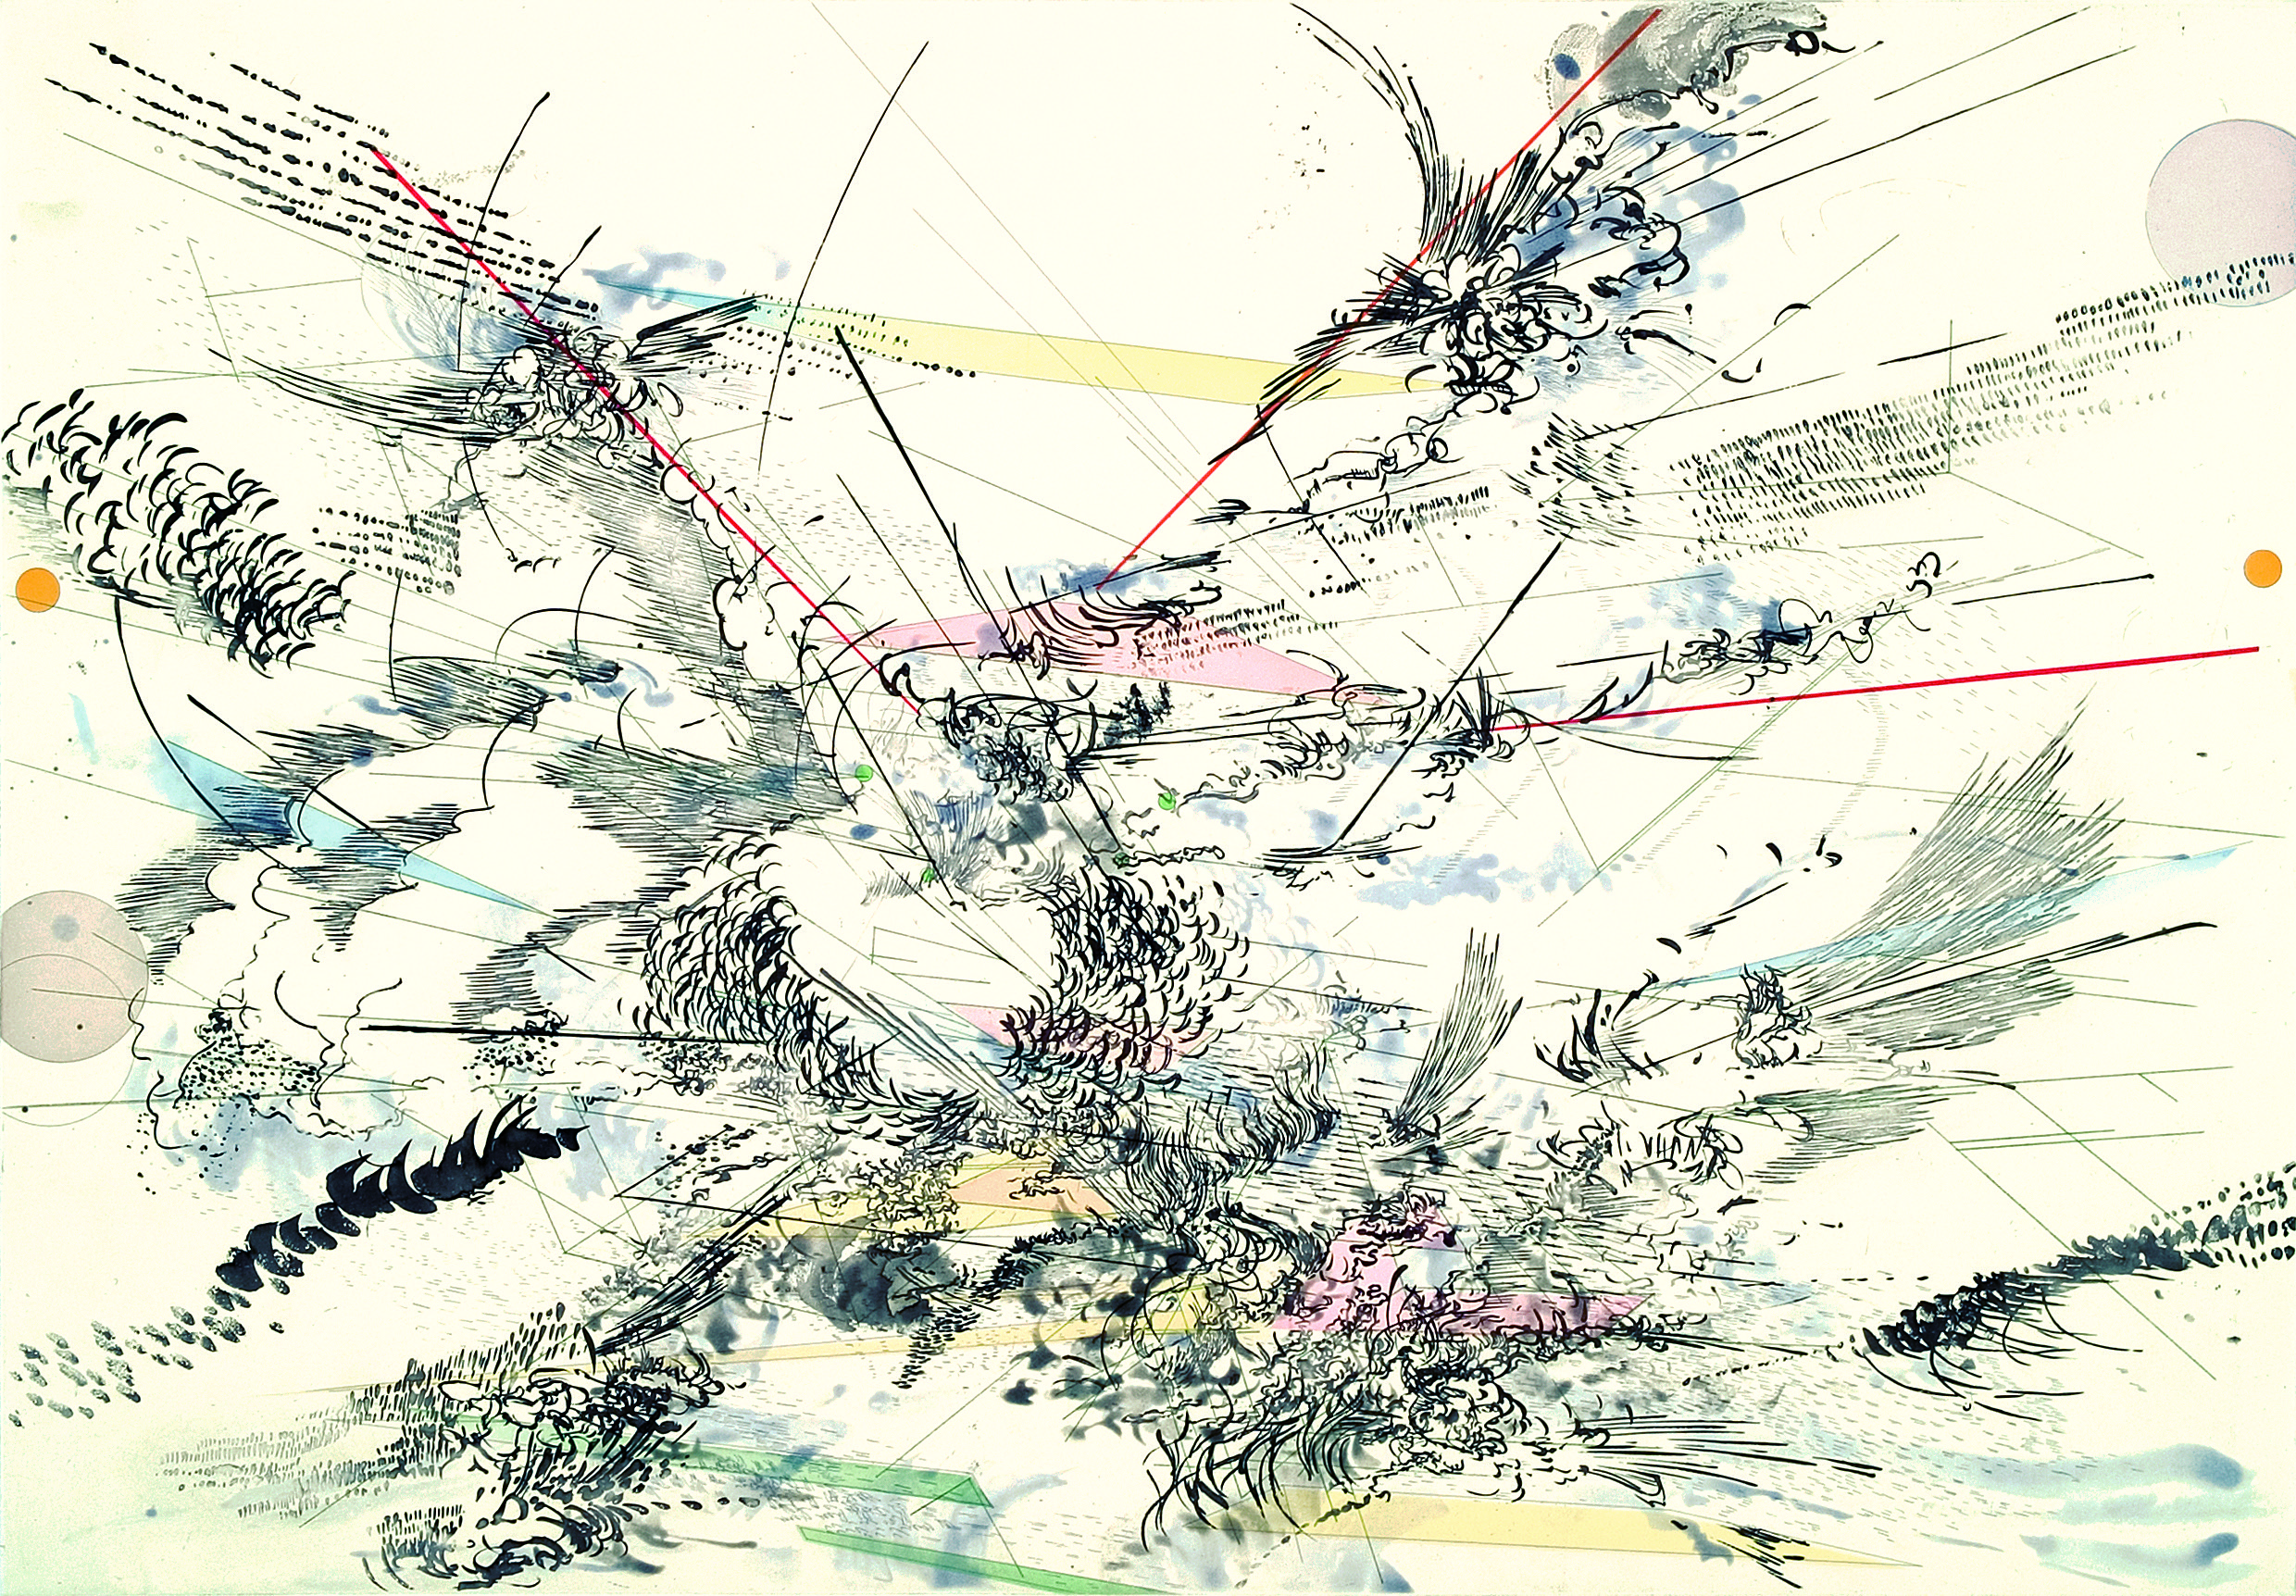 Julie Mehretu:  Local Calm, 2005; sugar lift aquatint with color aquatint, spit bit aquatint, and soft and hard ground etching and engraving, printed on gampi paper chine collé; 27 1/2 x 39 1/4 in.; BAMPFA, gift of Tecoah and Tom Bruce.